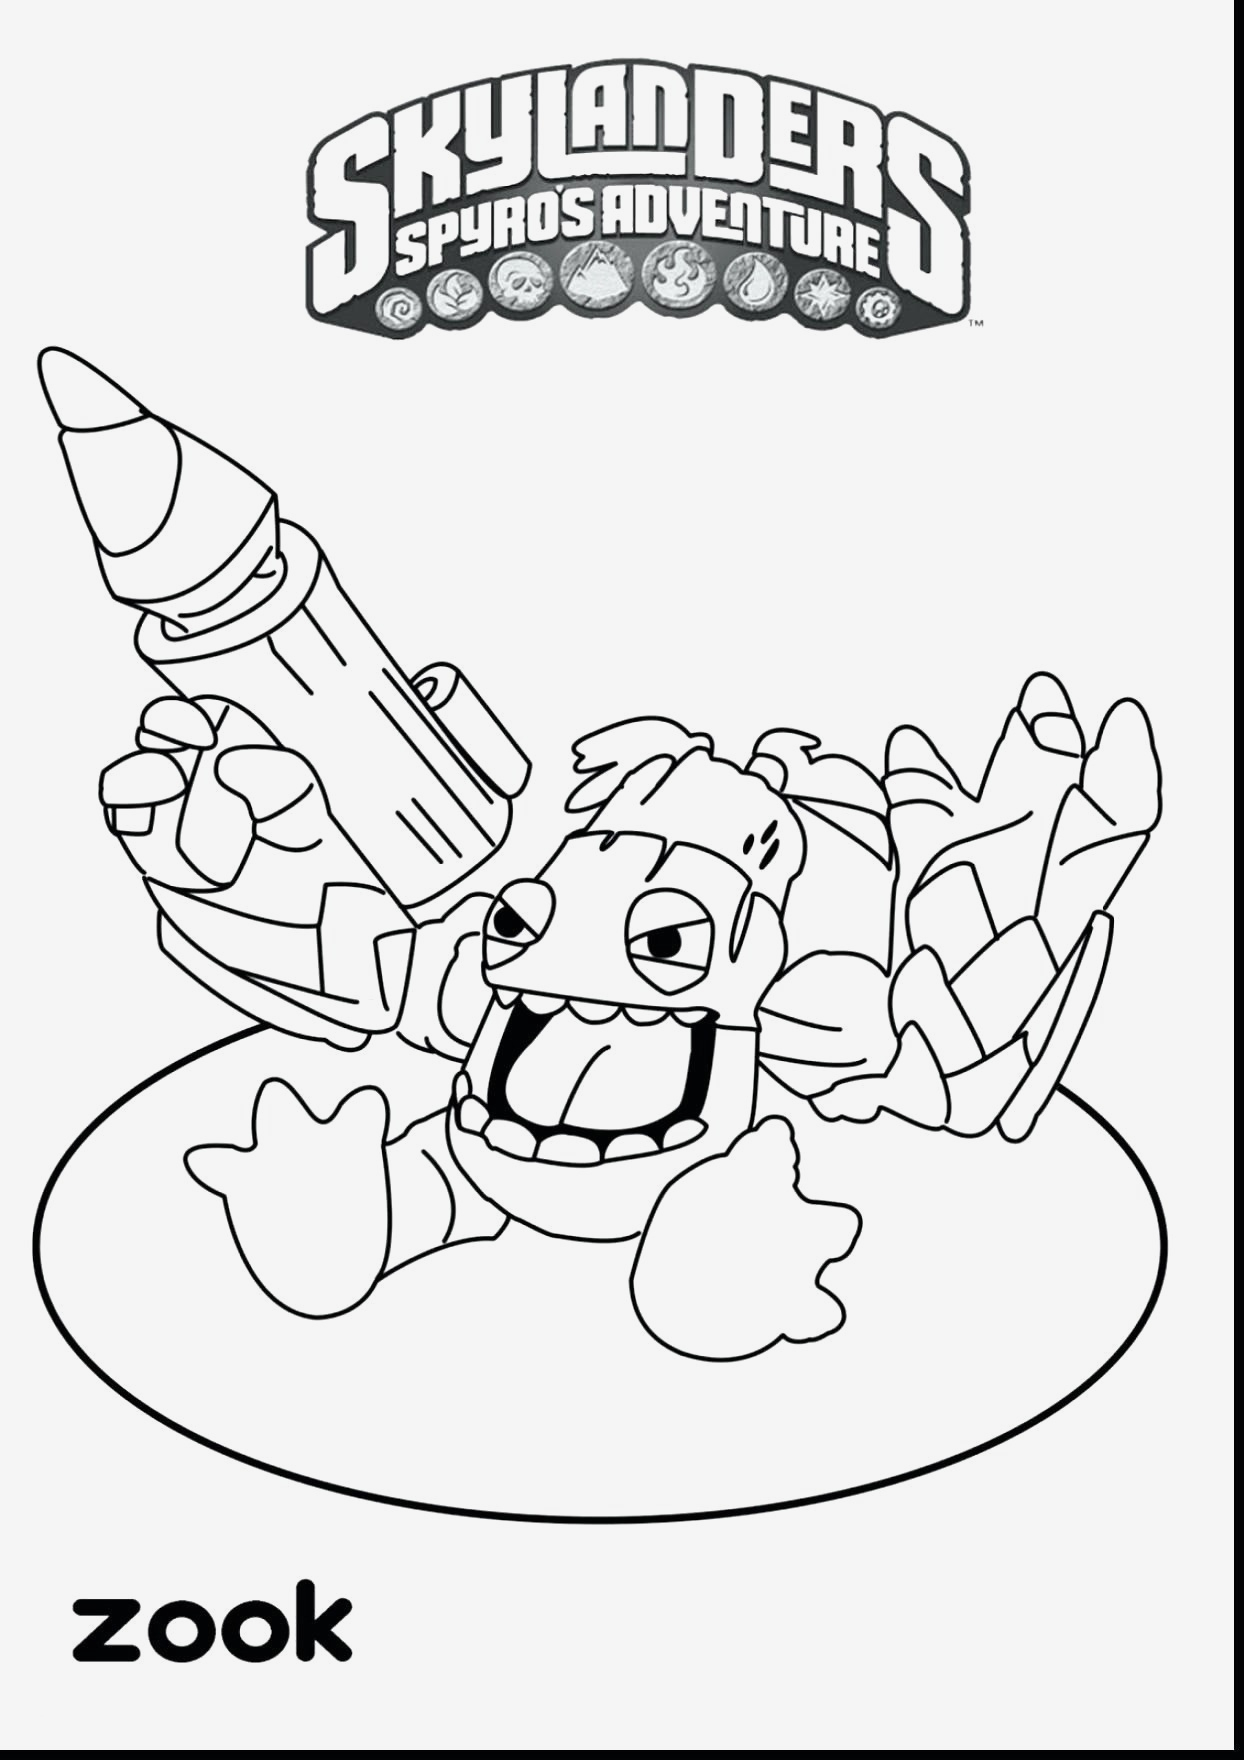 shopkins coloring pages Download-Cupcake Coloring Pages Free Printable 15 Luxury Cupcake Coloring Pages Cupcake Coloring Pages Best Easy 2-g